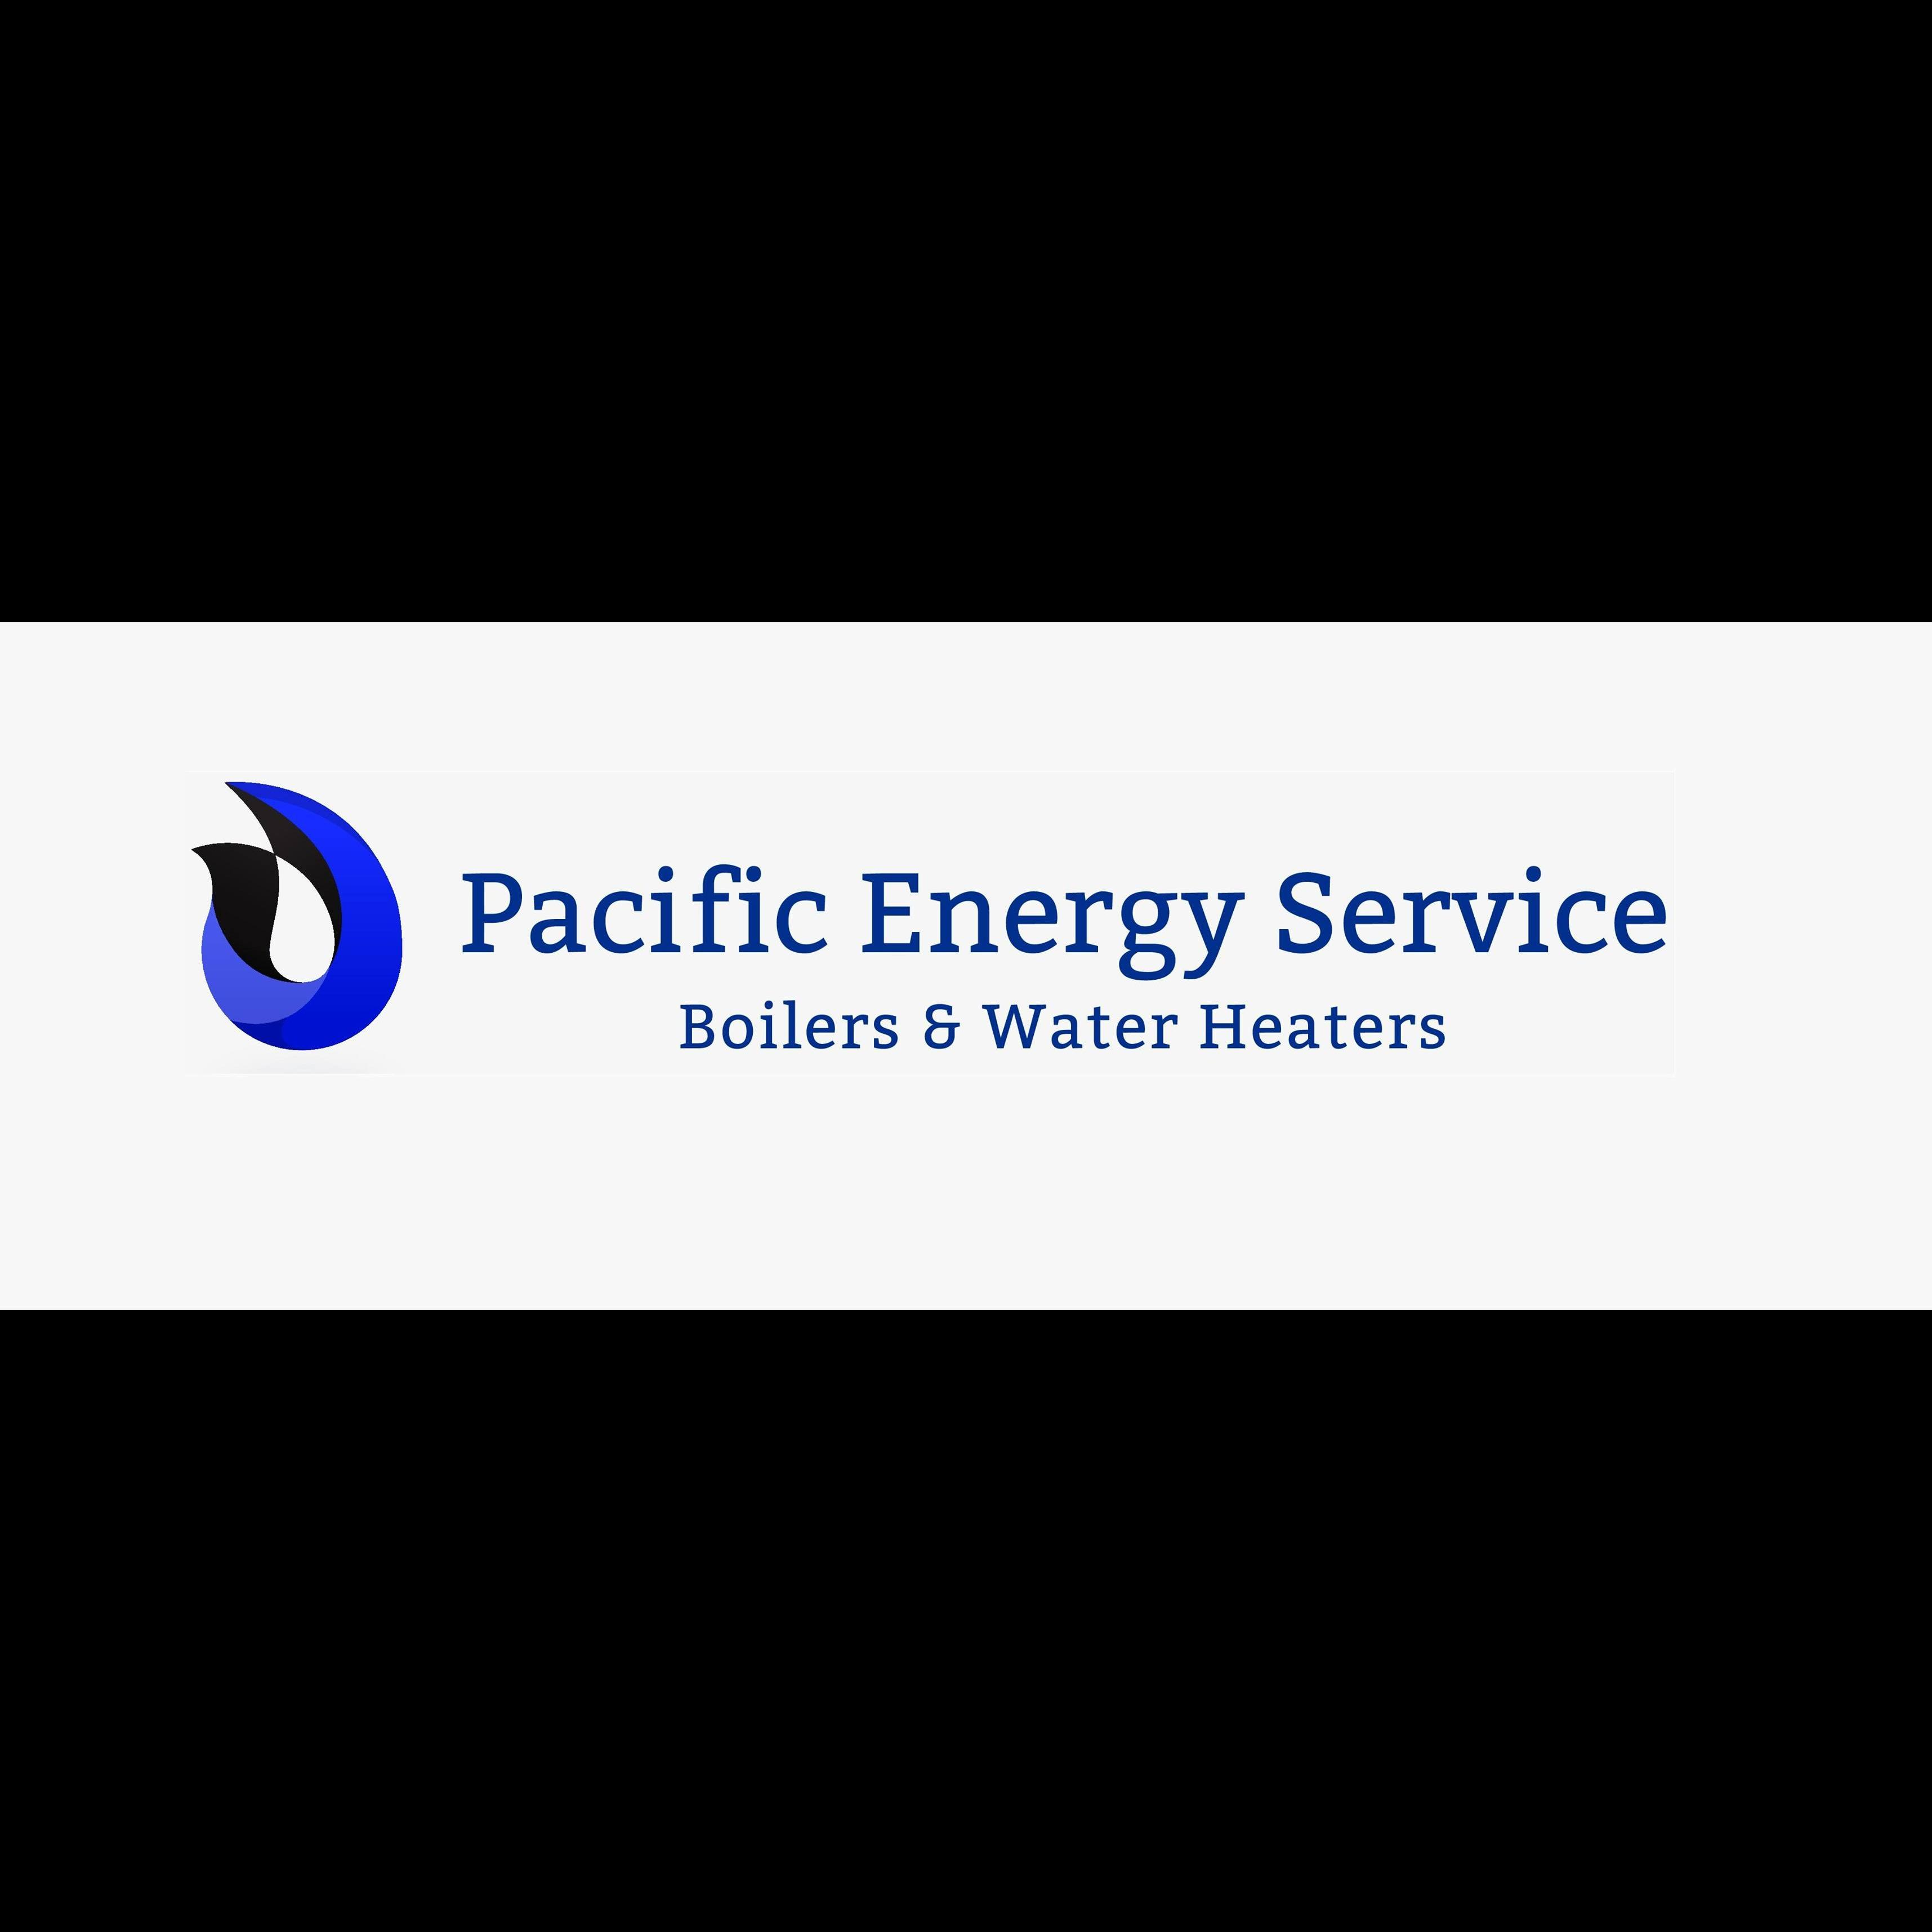 Pacific Energy Service